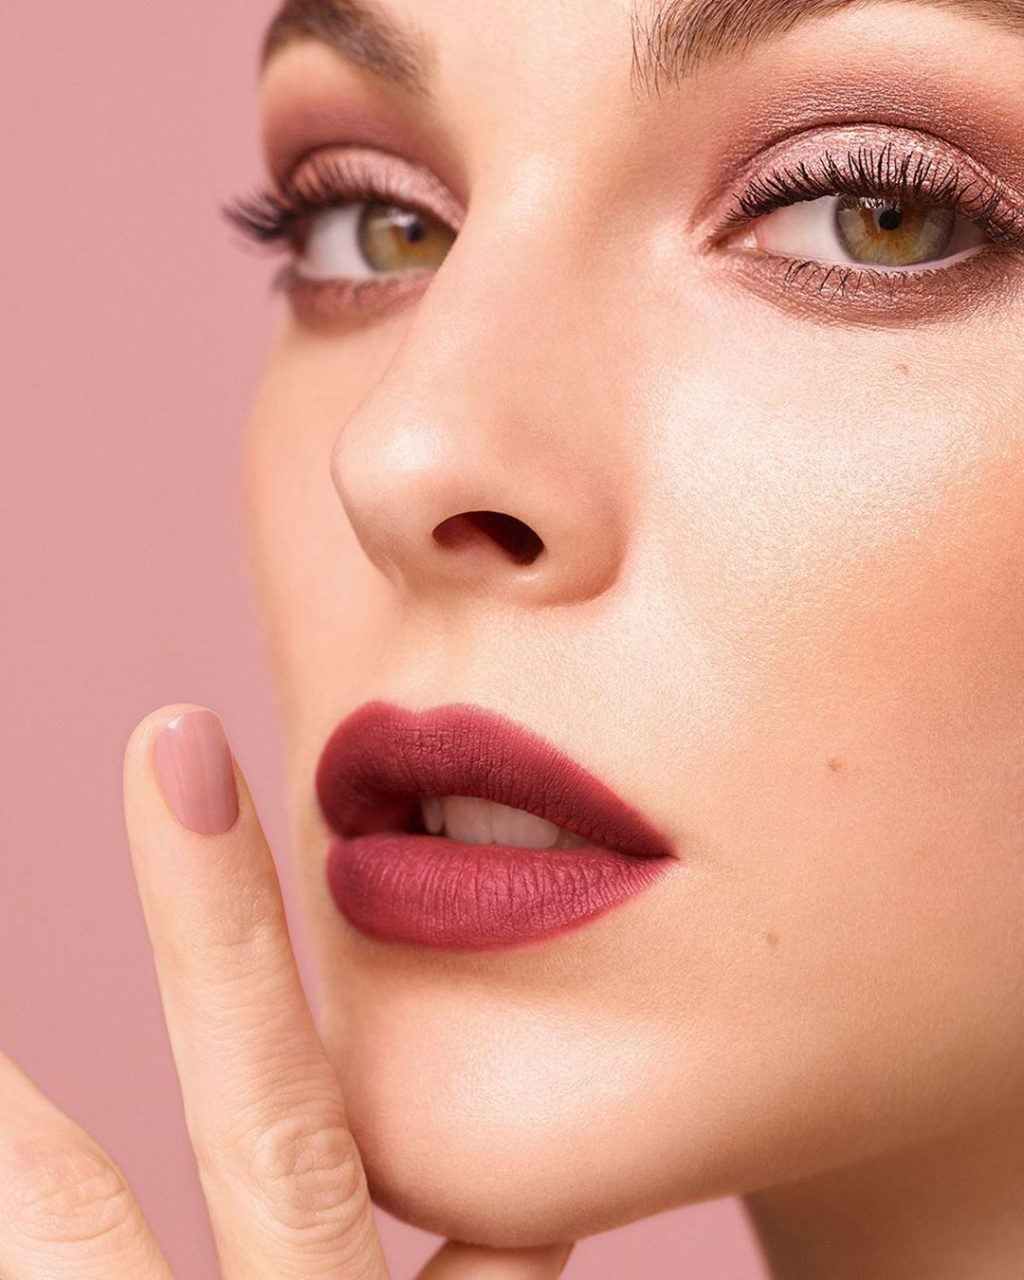 Everything About This Makeup Collection Screams Dreamy